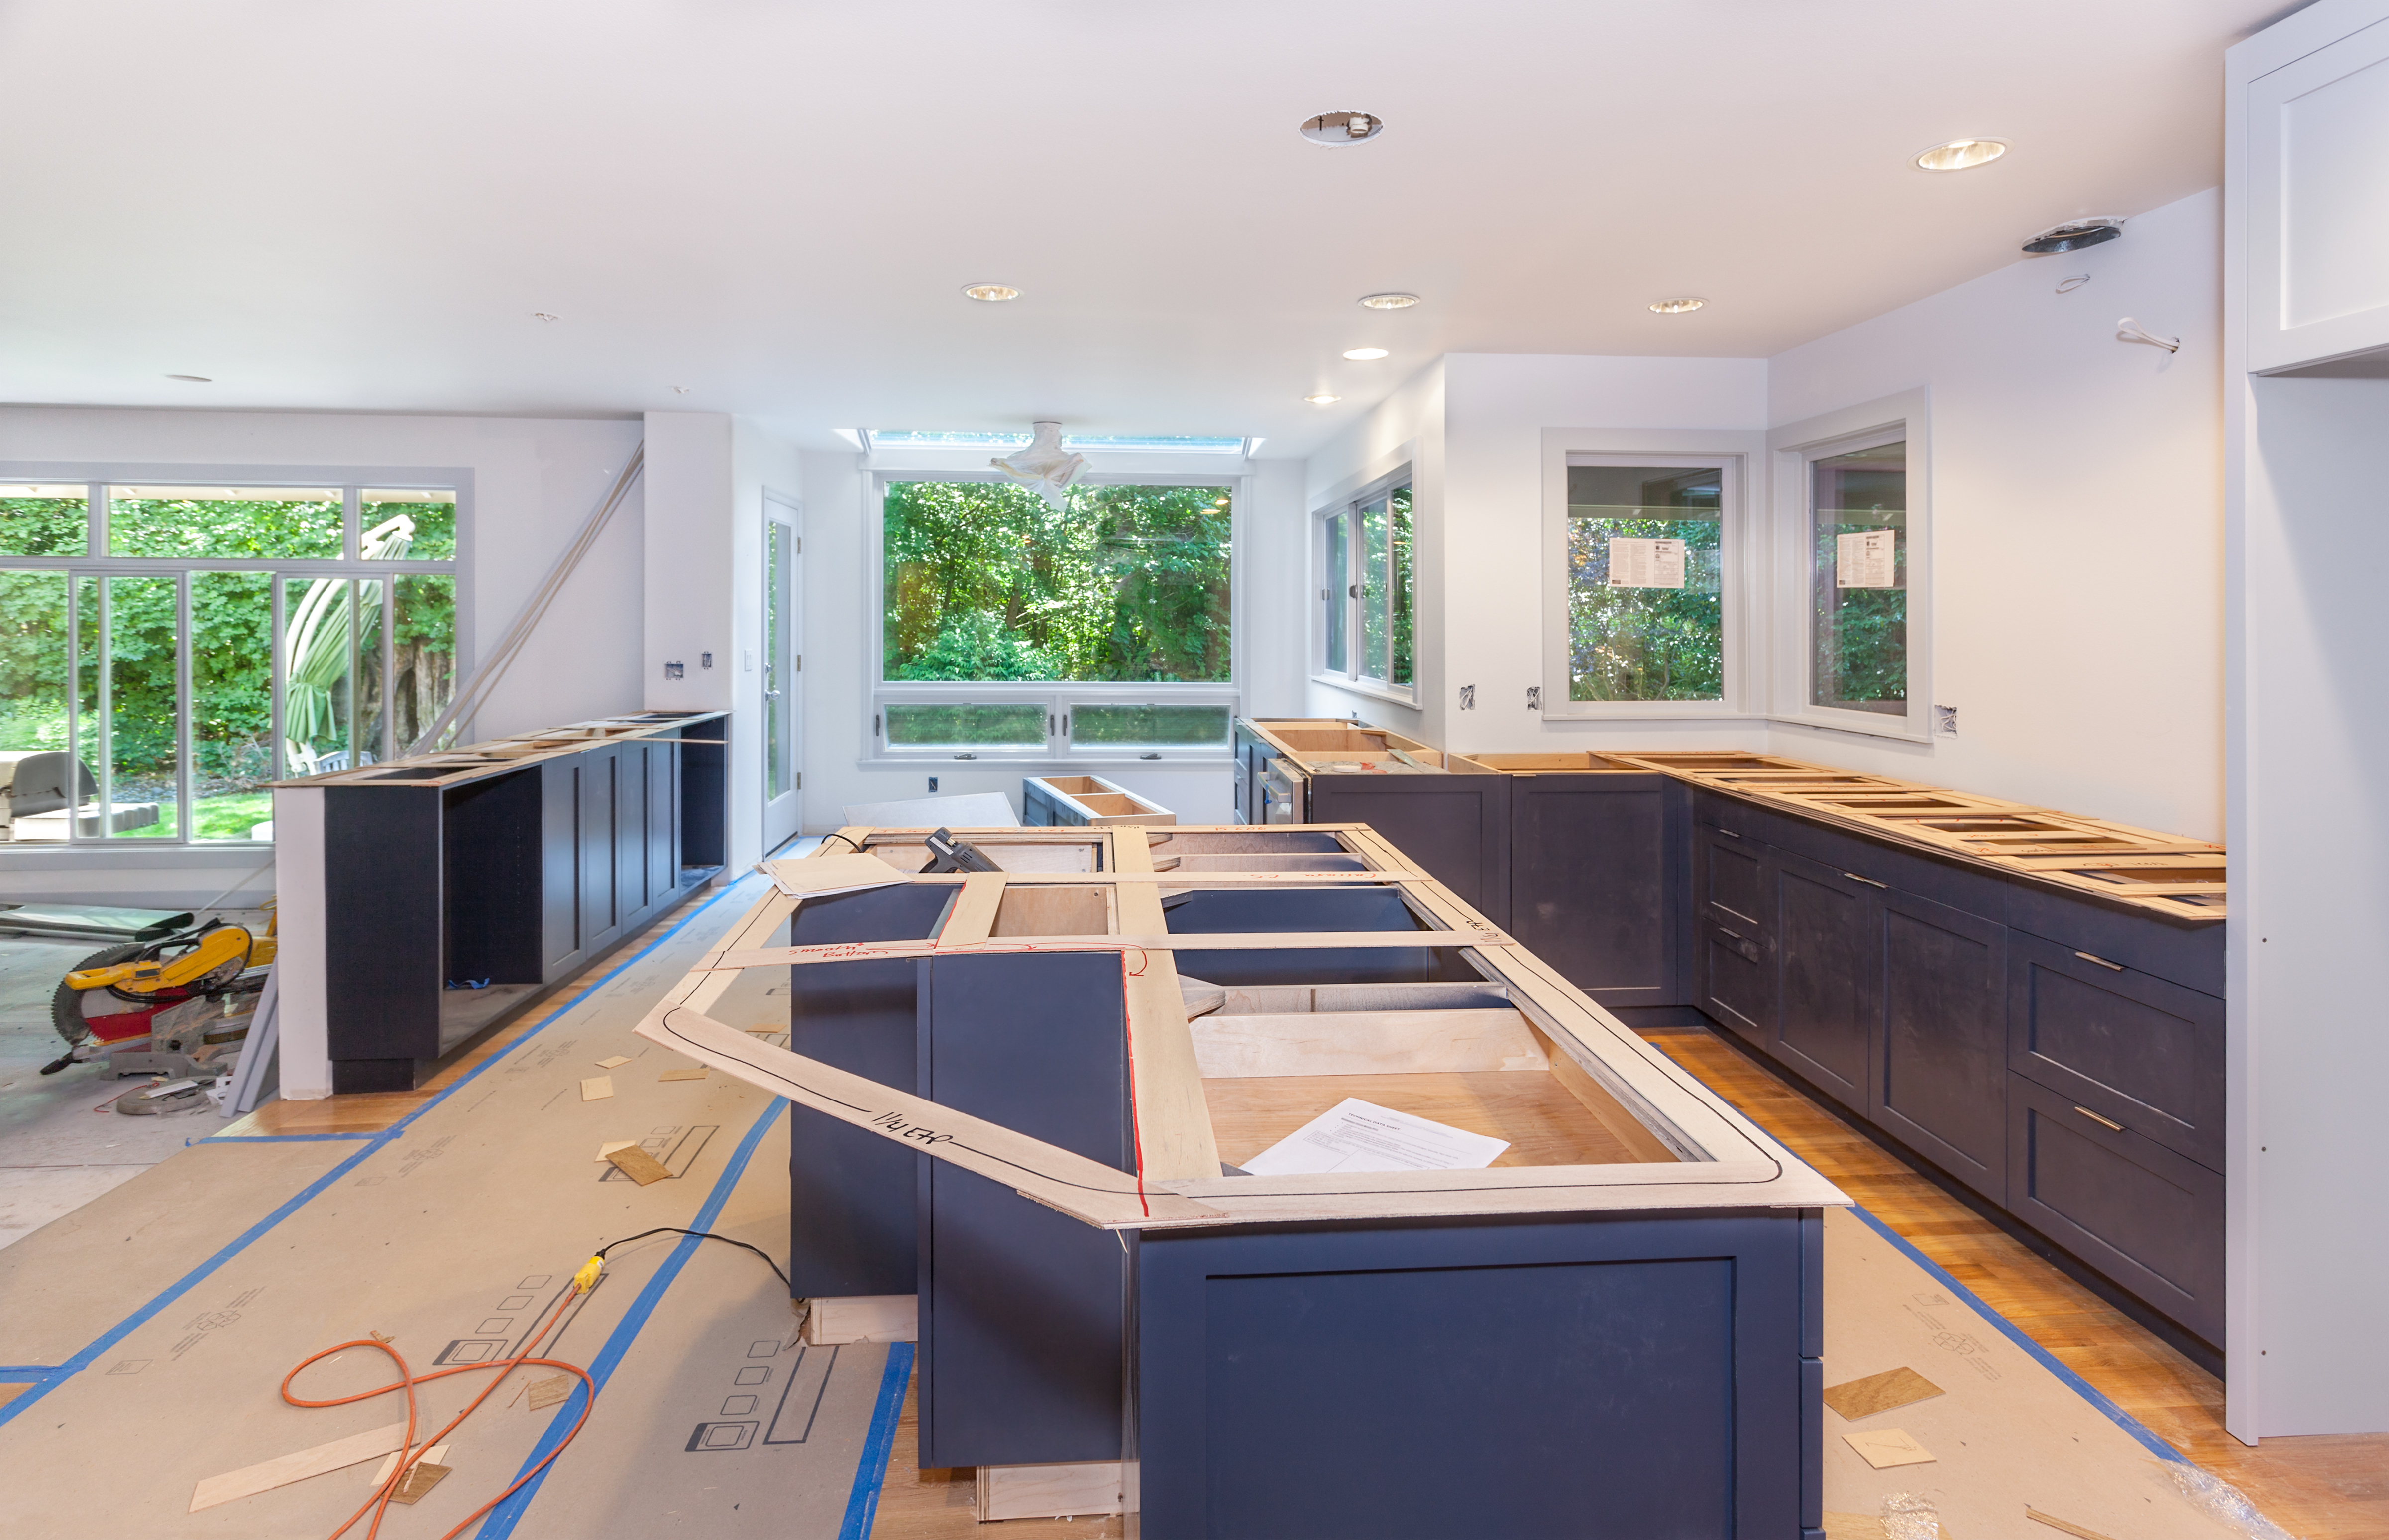 Top 5 Ways To Save Money When Remodeling Your Kitchen